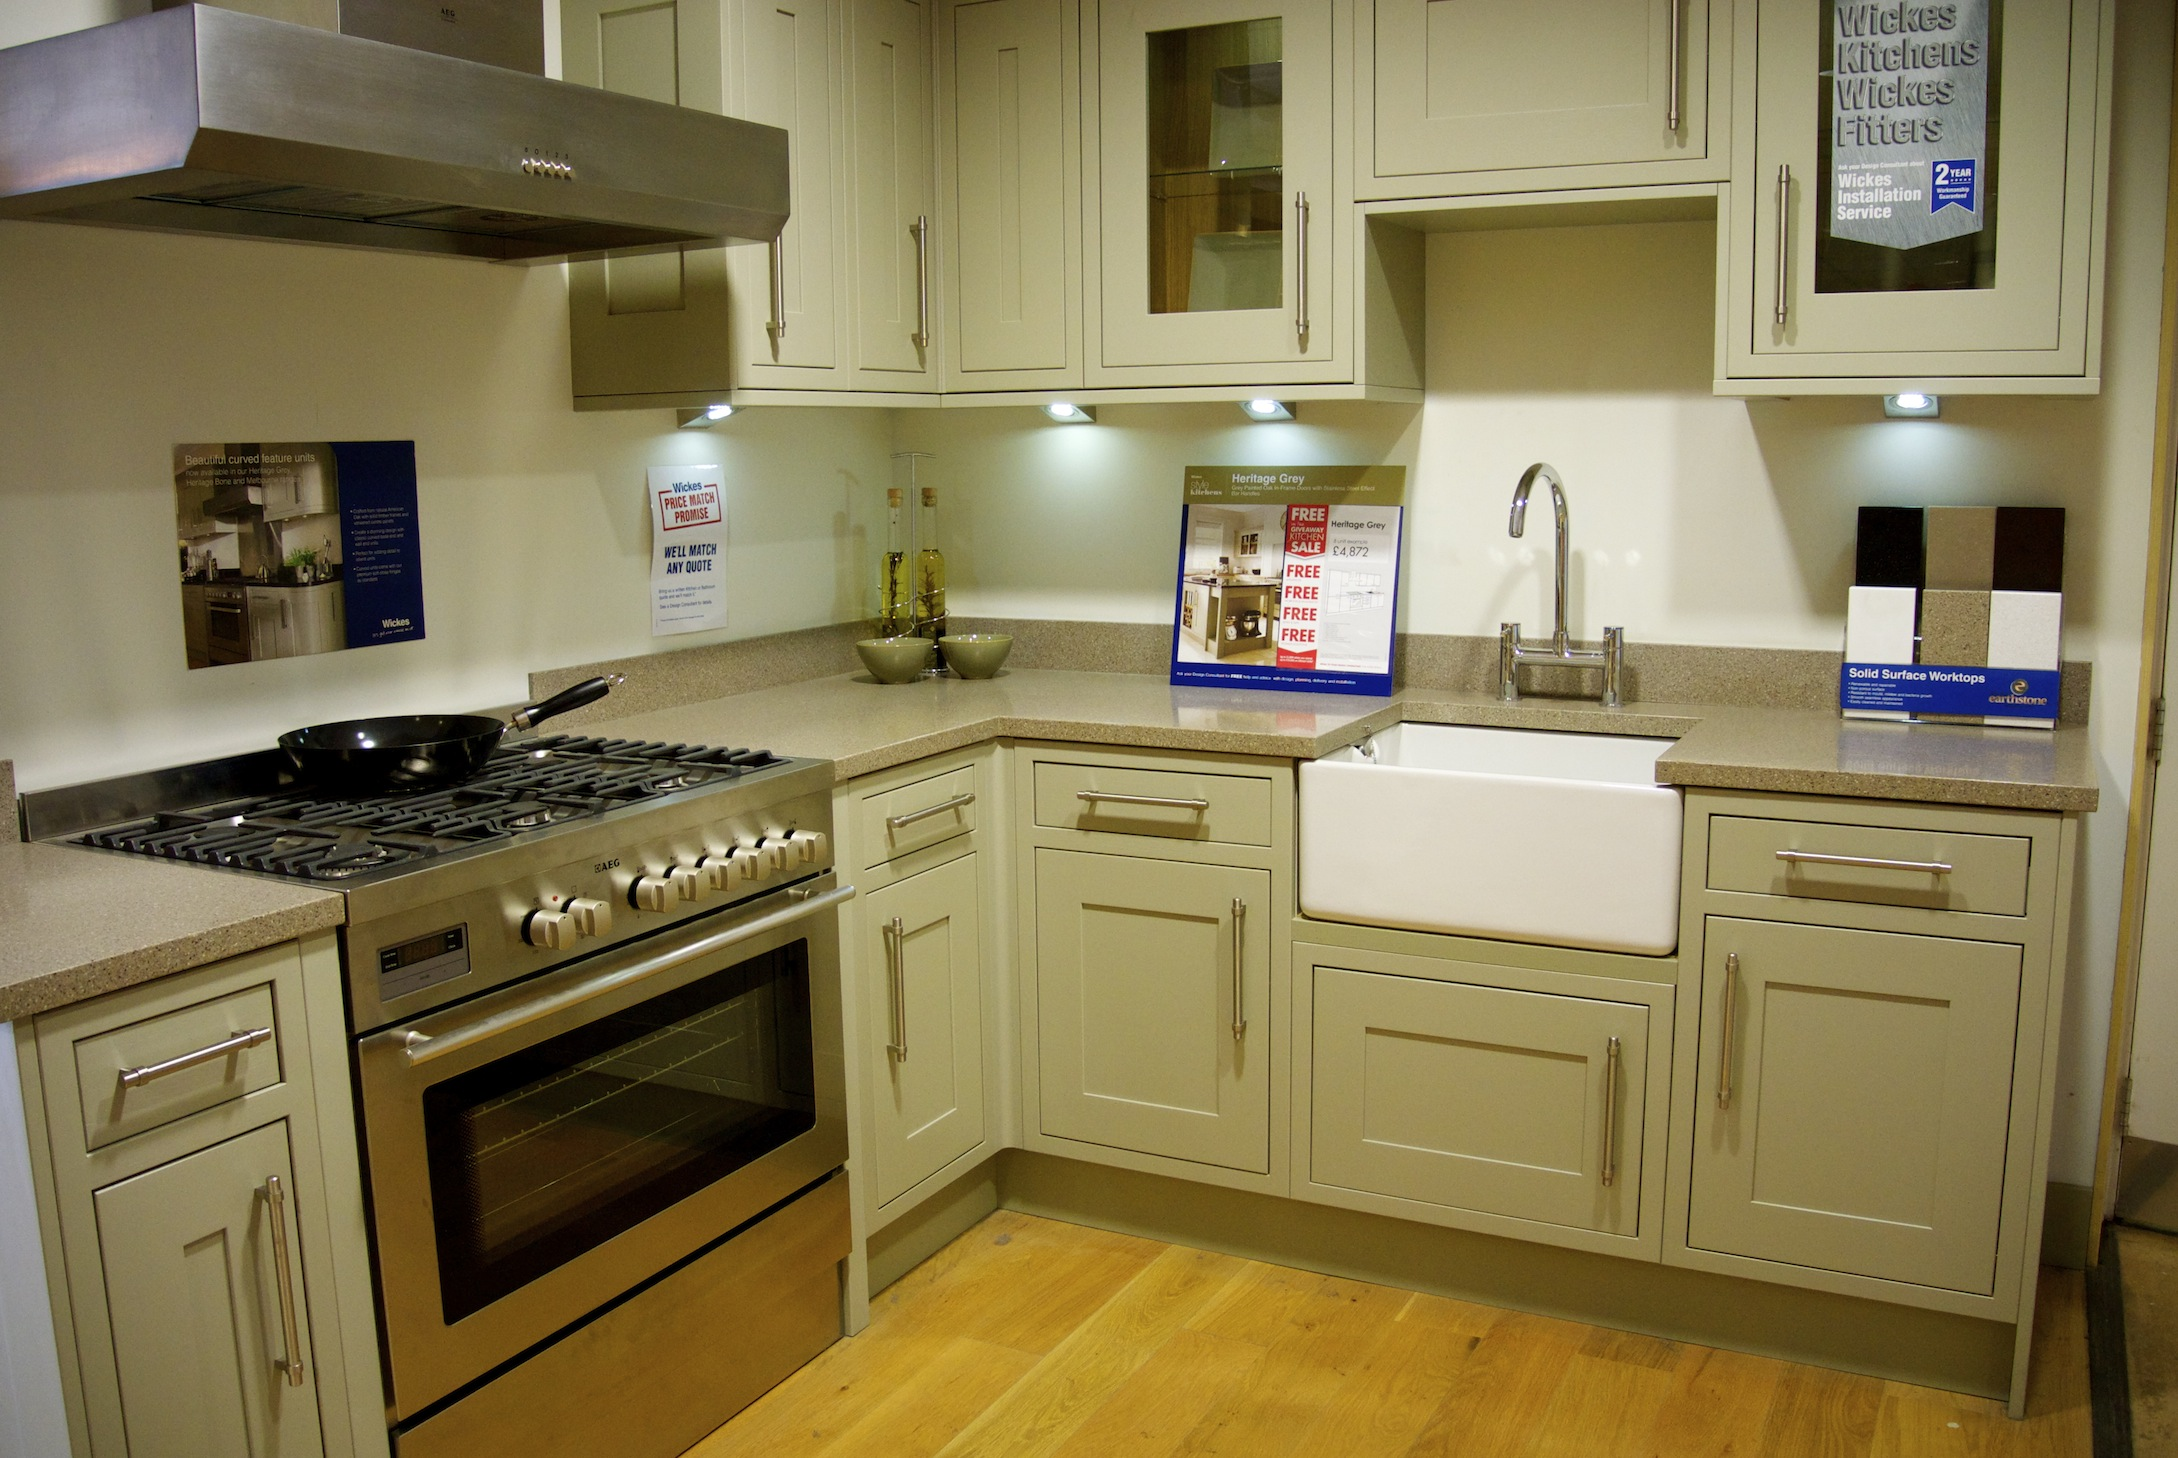 Wickes kichens untold blisses for Wickes kitchen cupboards